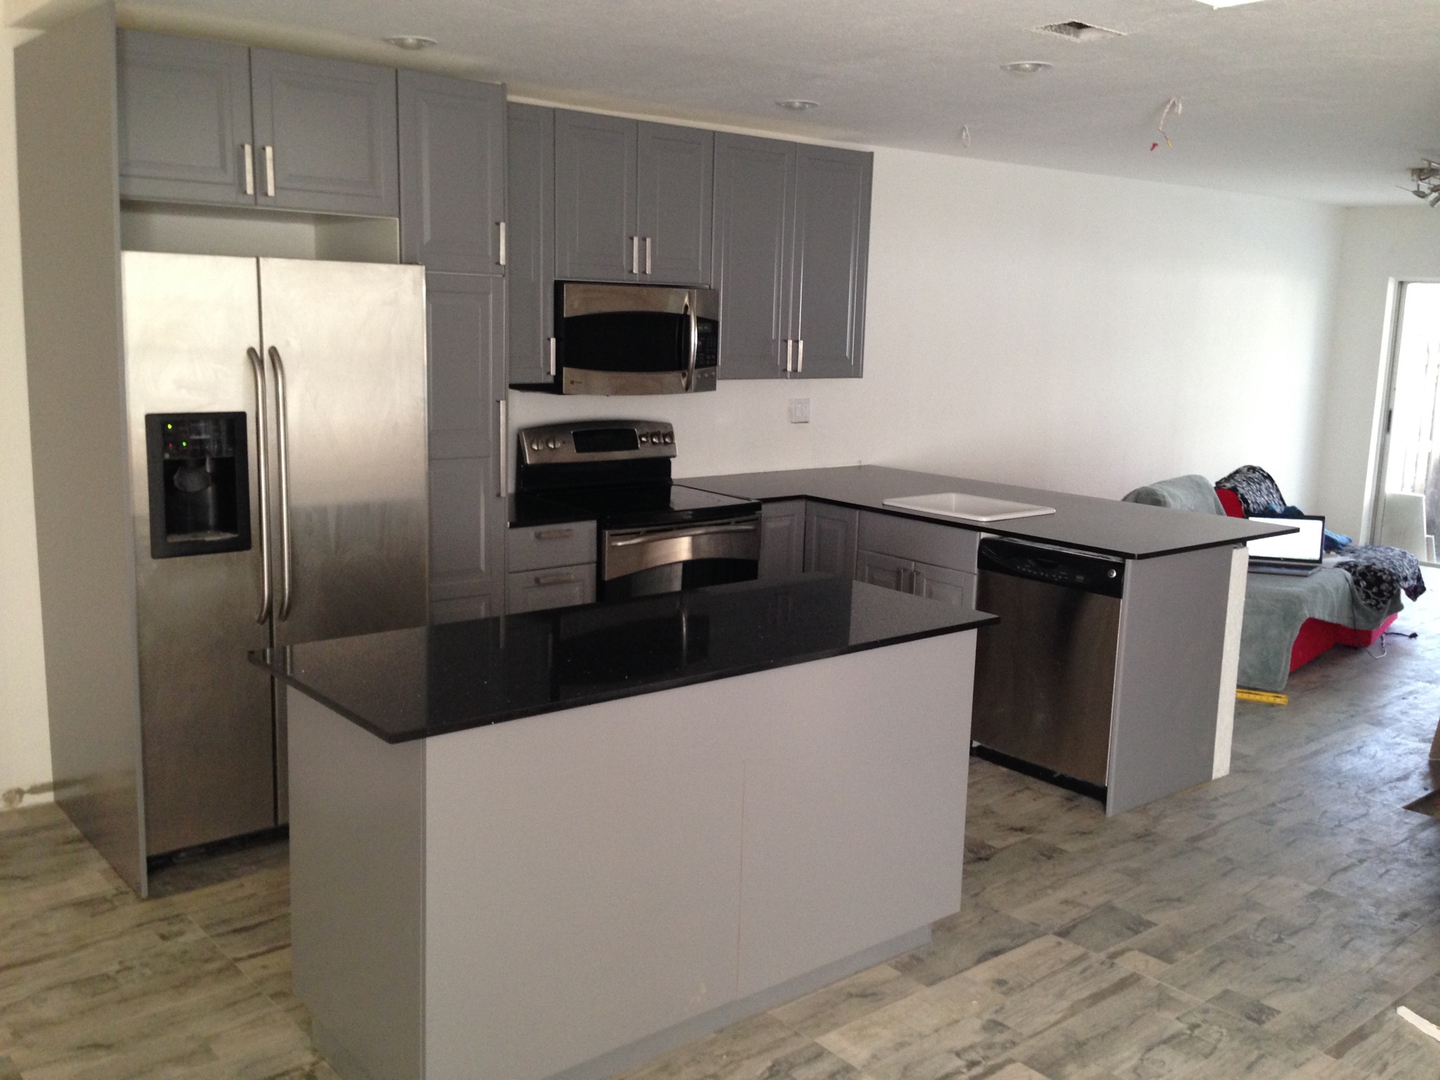 kitchen cabinets beach kitchen cabinets IKEA Kitchen Cabinets Installations in Miami Broward West Palm Beach FL